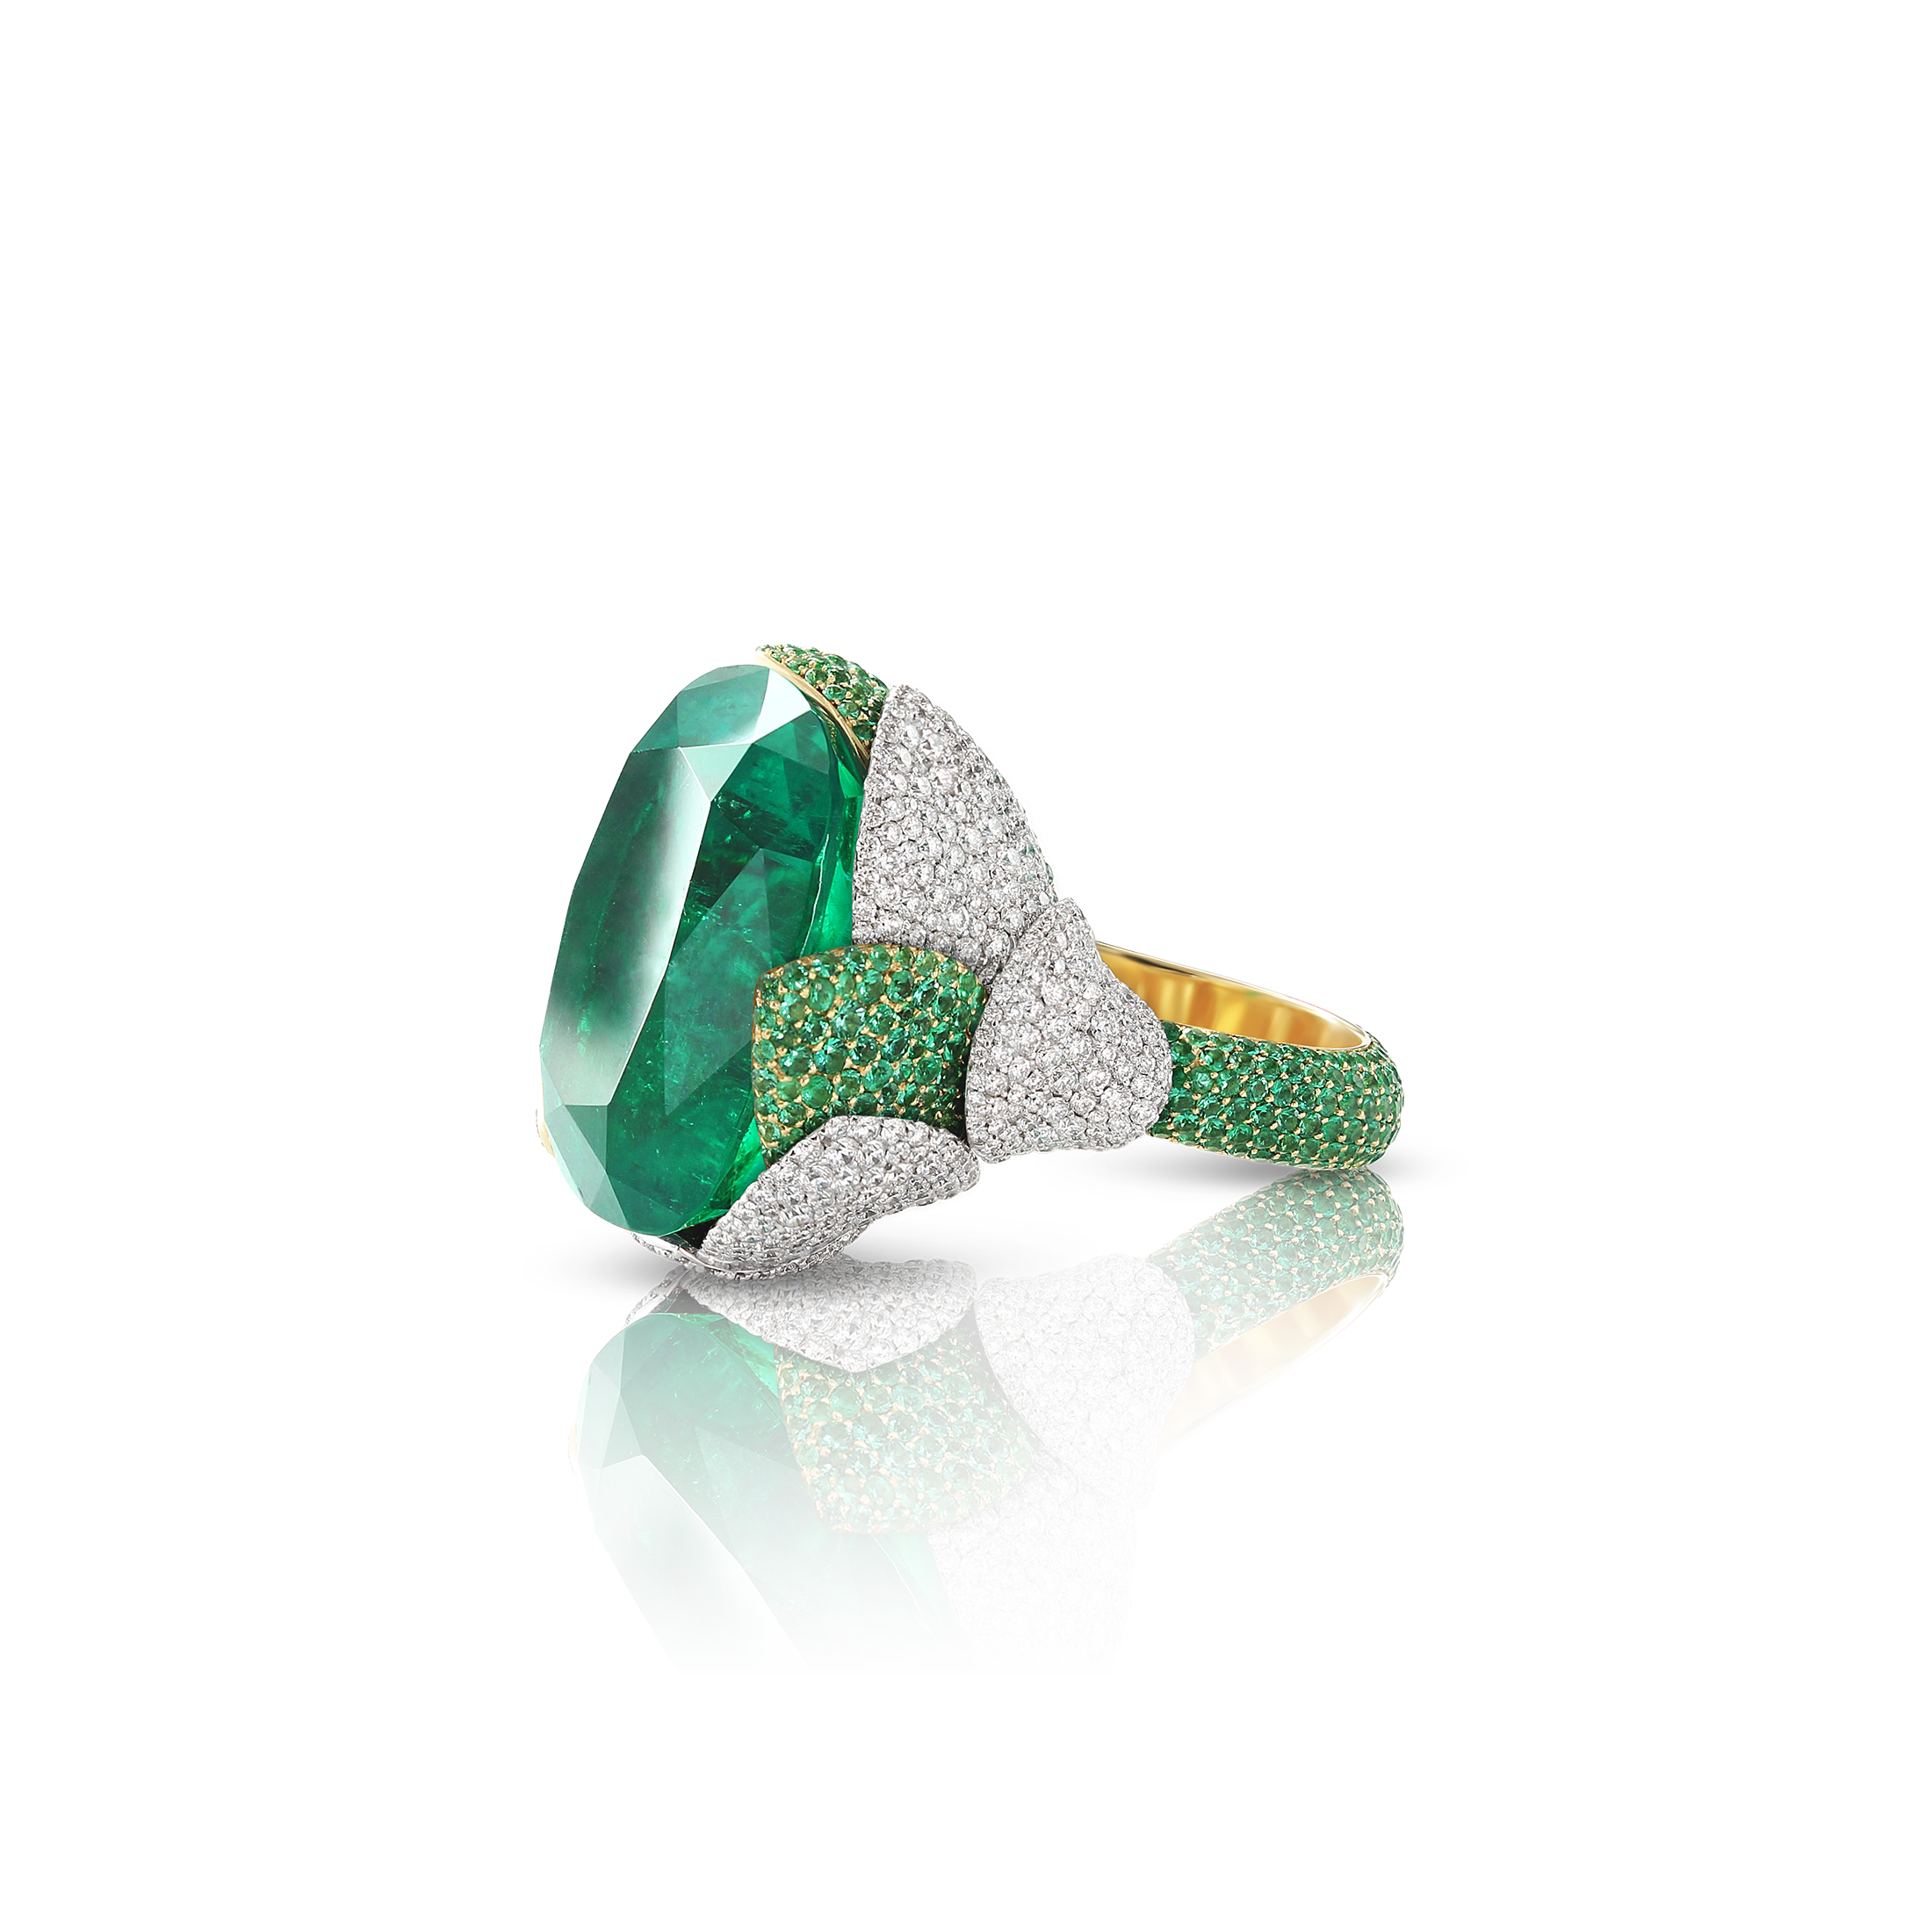 18k White and Yellow Gold Giardini Vento Atelier Ring with Emeralds, Emerald Pavé and Diamonds